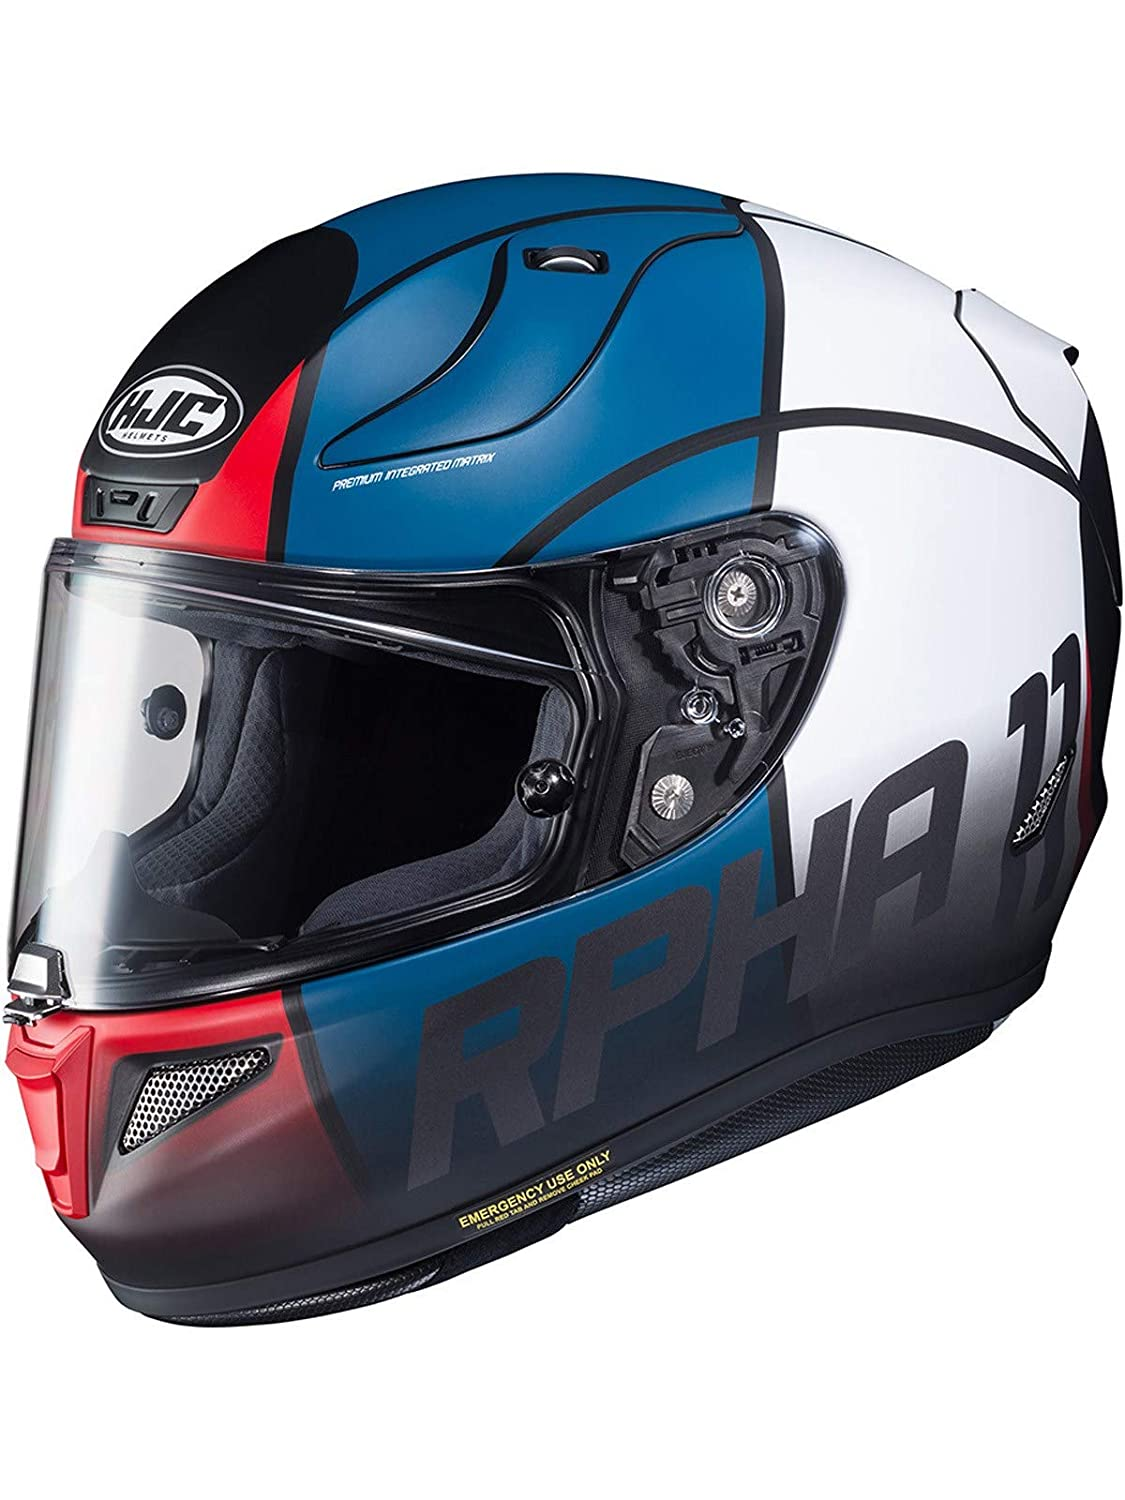 RPHA 11 Motorcycle Helmet Quintain MC21SF Red White Blue L HJC